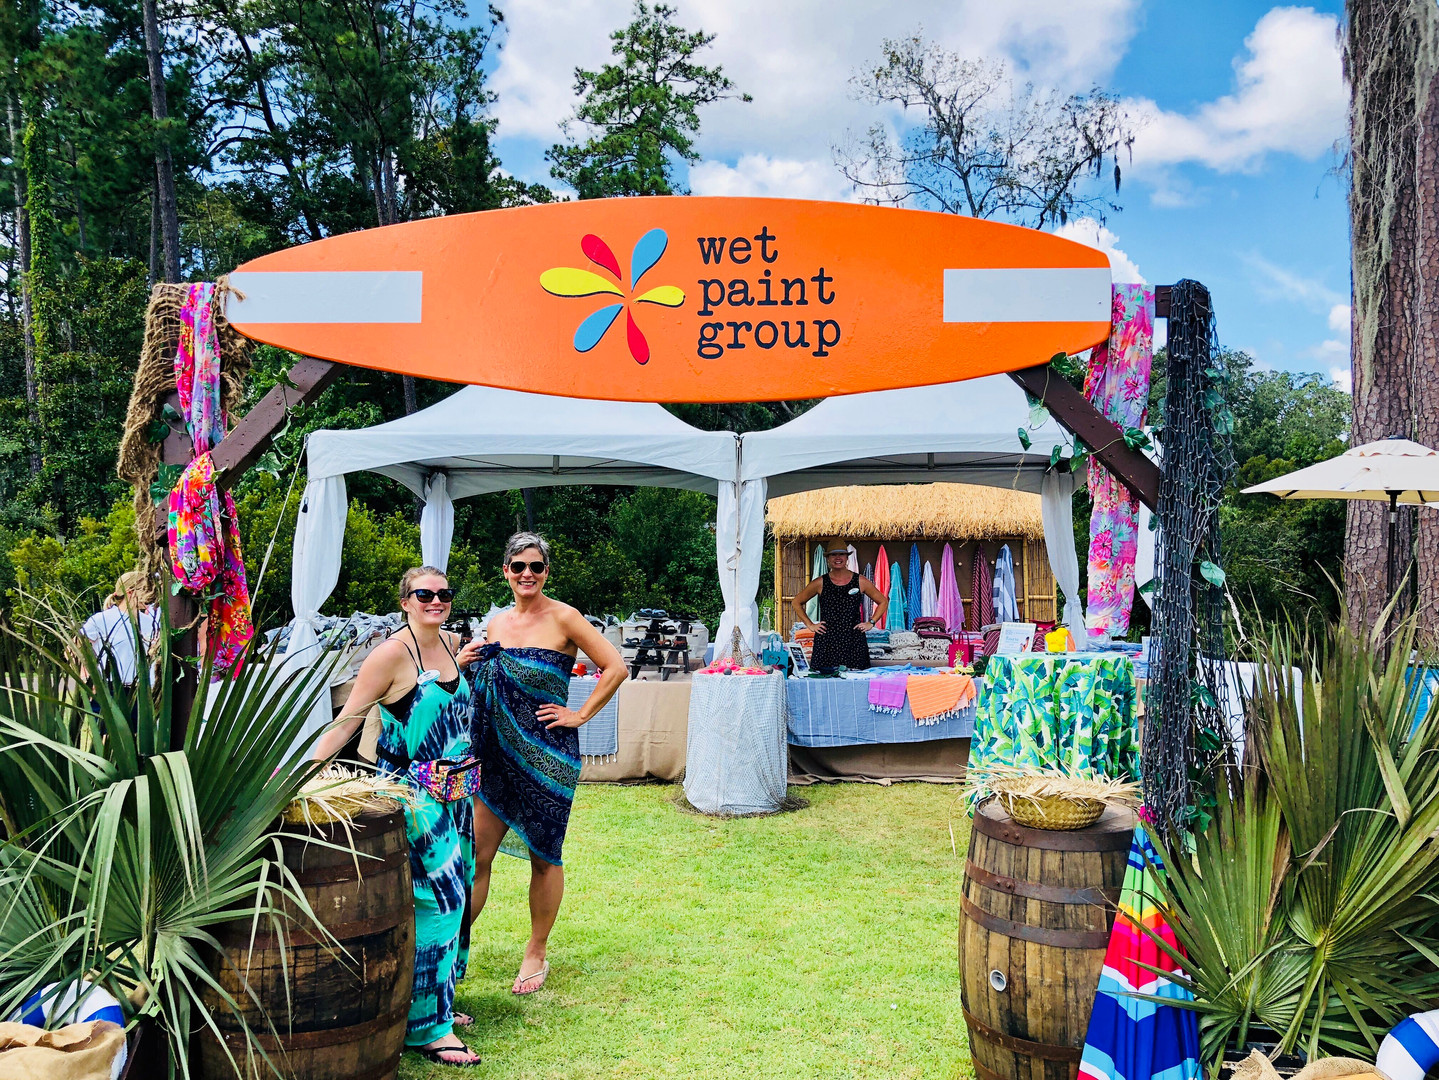 wet paint group gifting experience in hawaii